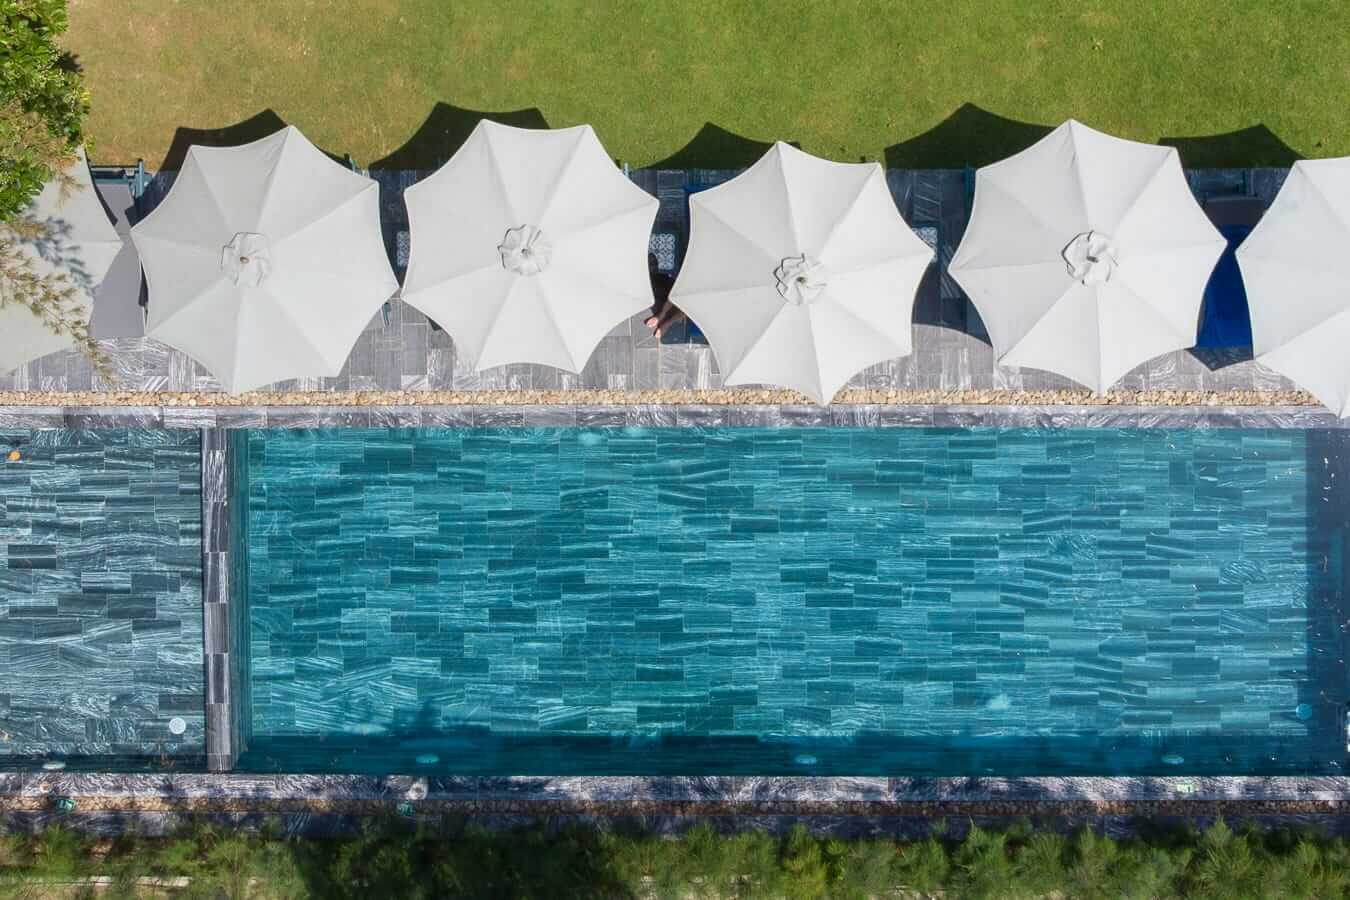 Sol Hotel aerial: Pools in Hoi An